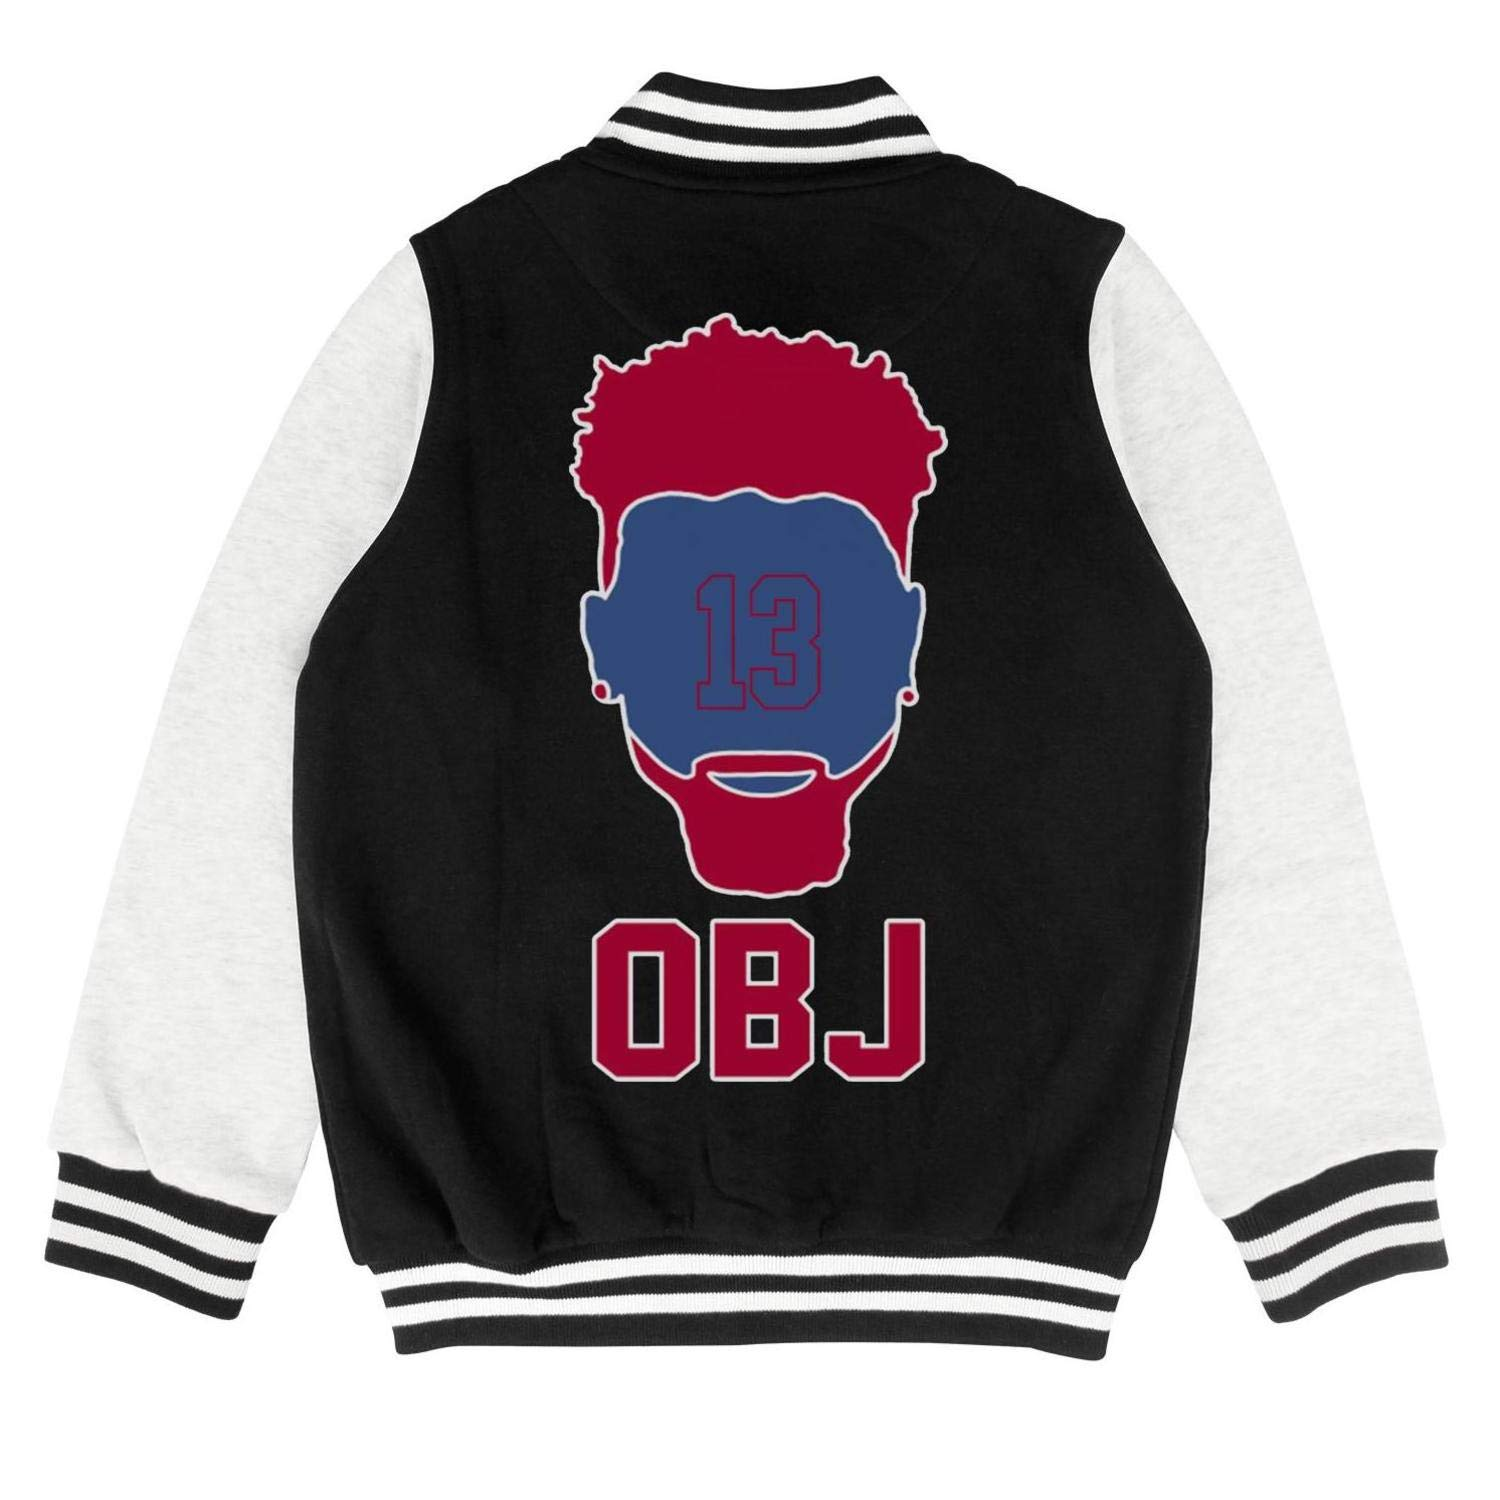 FPFLY Kids Girls Boys OBJ-Wide-Receiver- Fashion Cotton Hoodies Button Varsity Baseball Jacket 2-10 Years